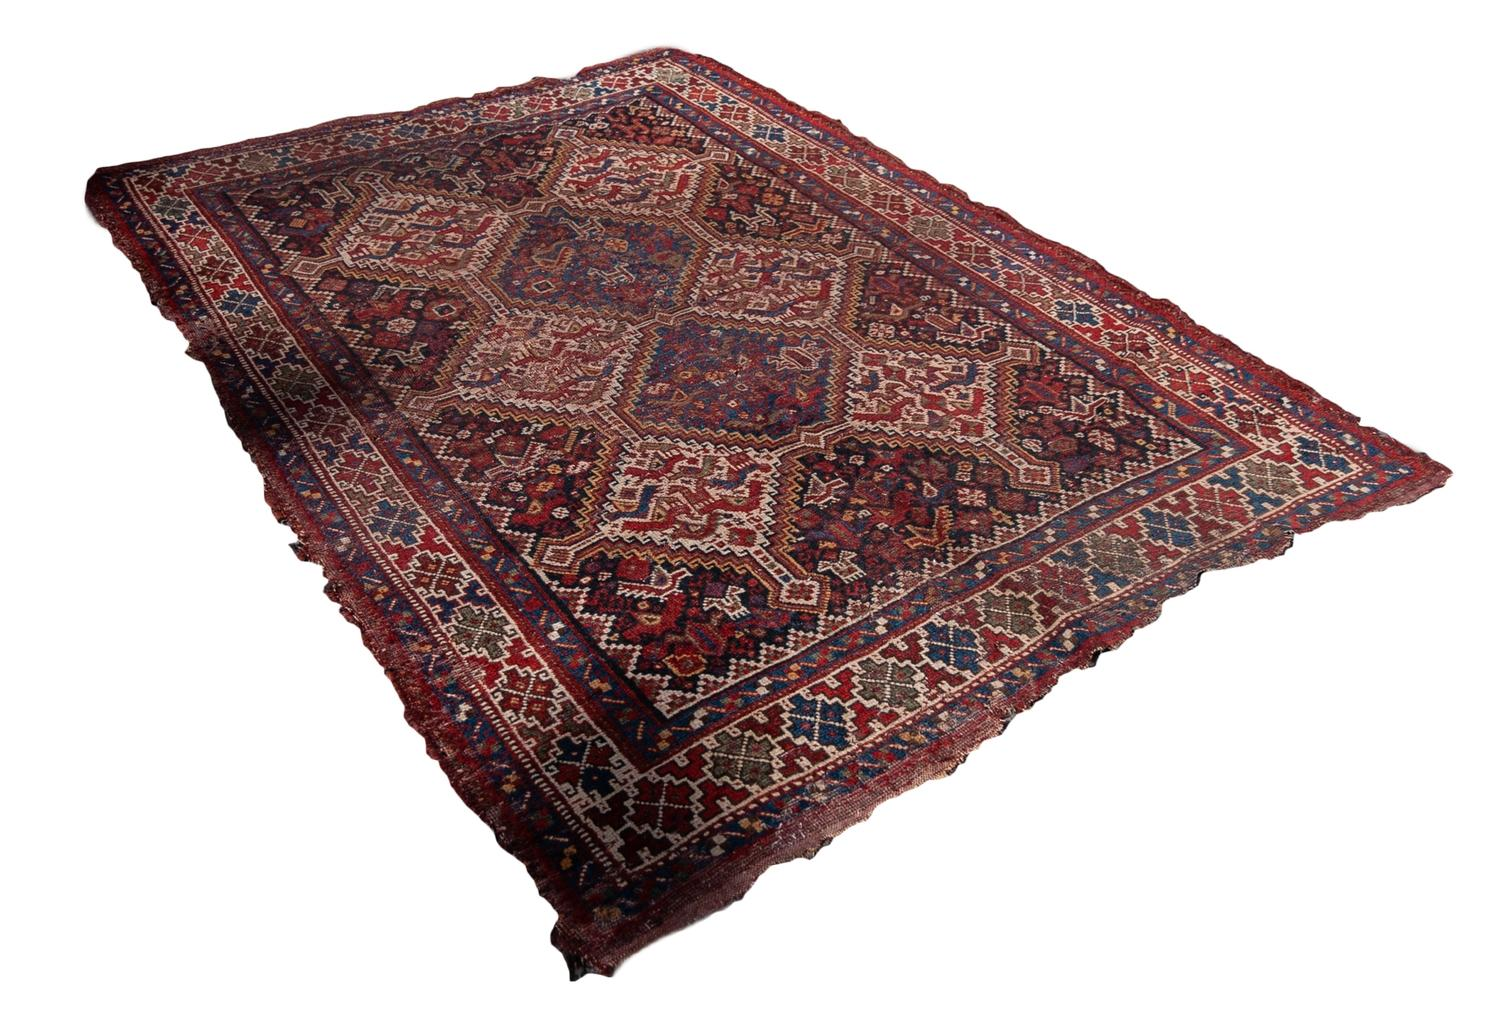 Lot 27 - SHIRAZ PERSIAN RUG, with three rows of diamond shaped pole medallions, the centre row with